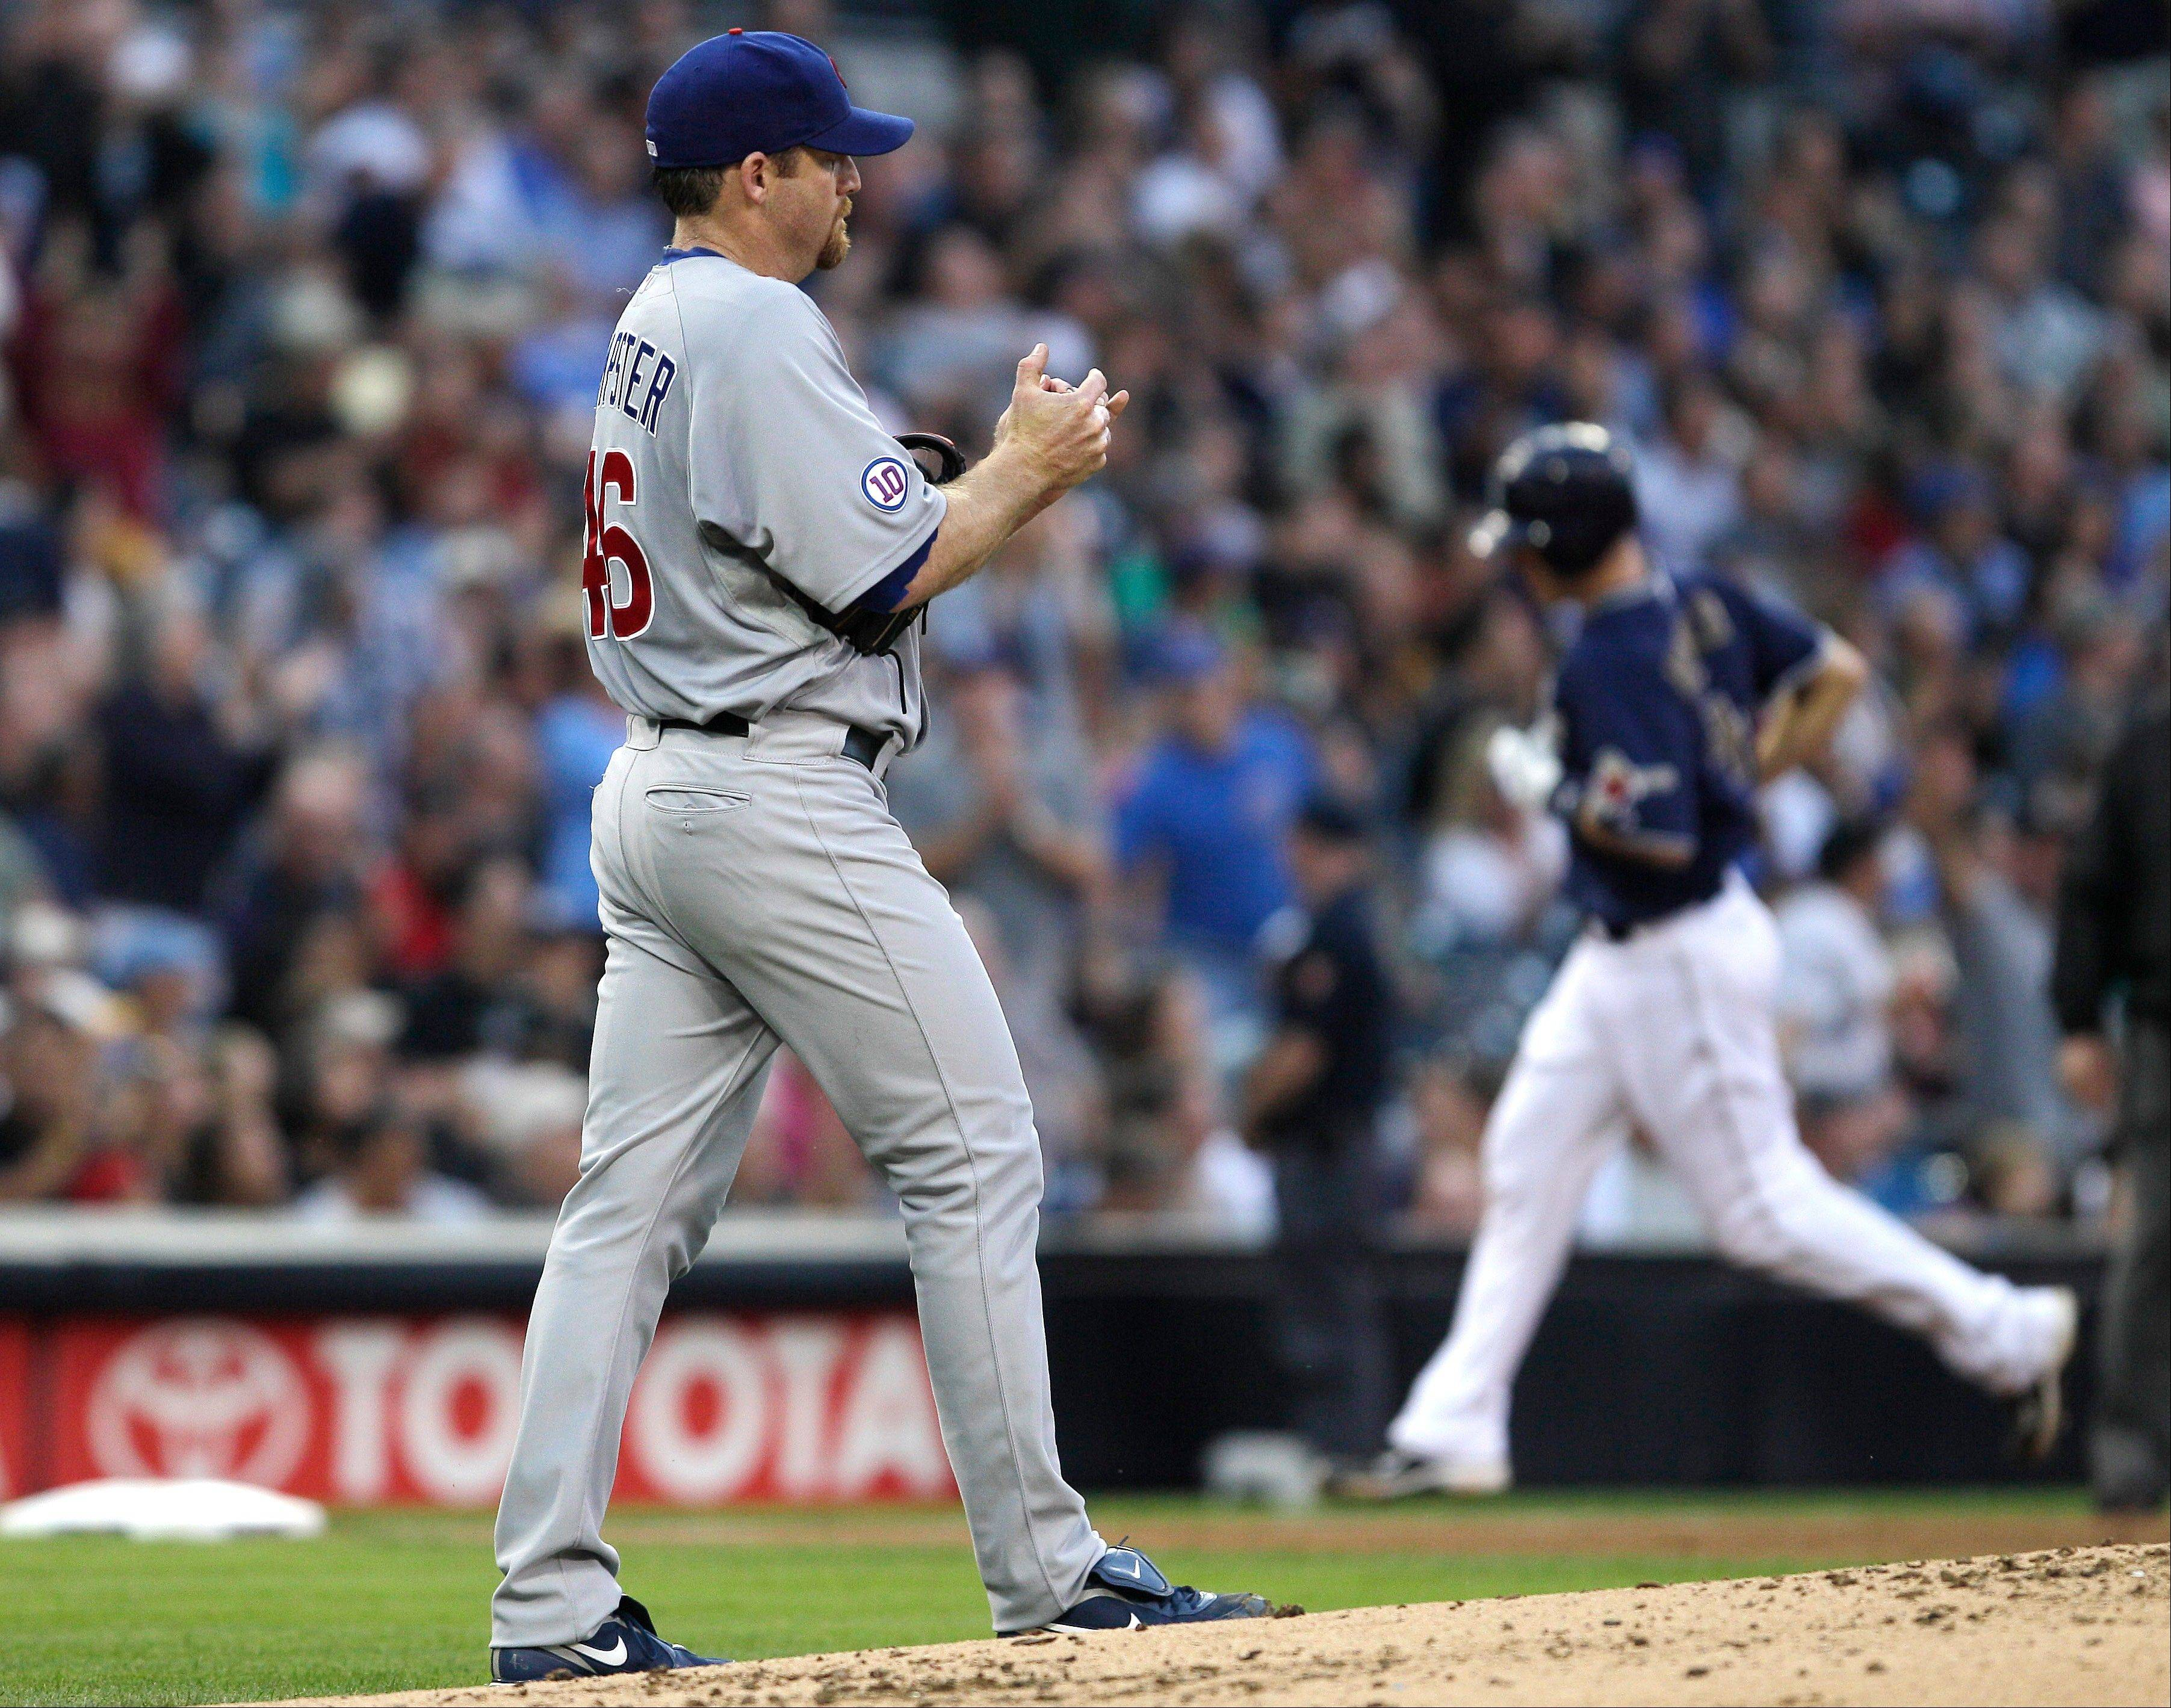 Chicago Cubs starting pitcher Ryan Dempster, left, rubs a new baseball as San Diego Padres' Nick Hundley rounds the bases with a three-run home run during the third inning of a game on Wednesday, Sept. 28, 2011, in San Diego.